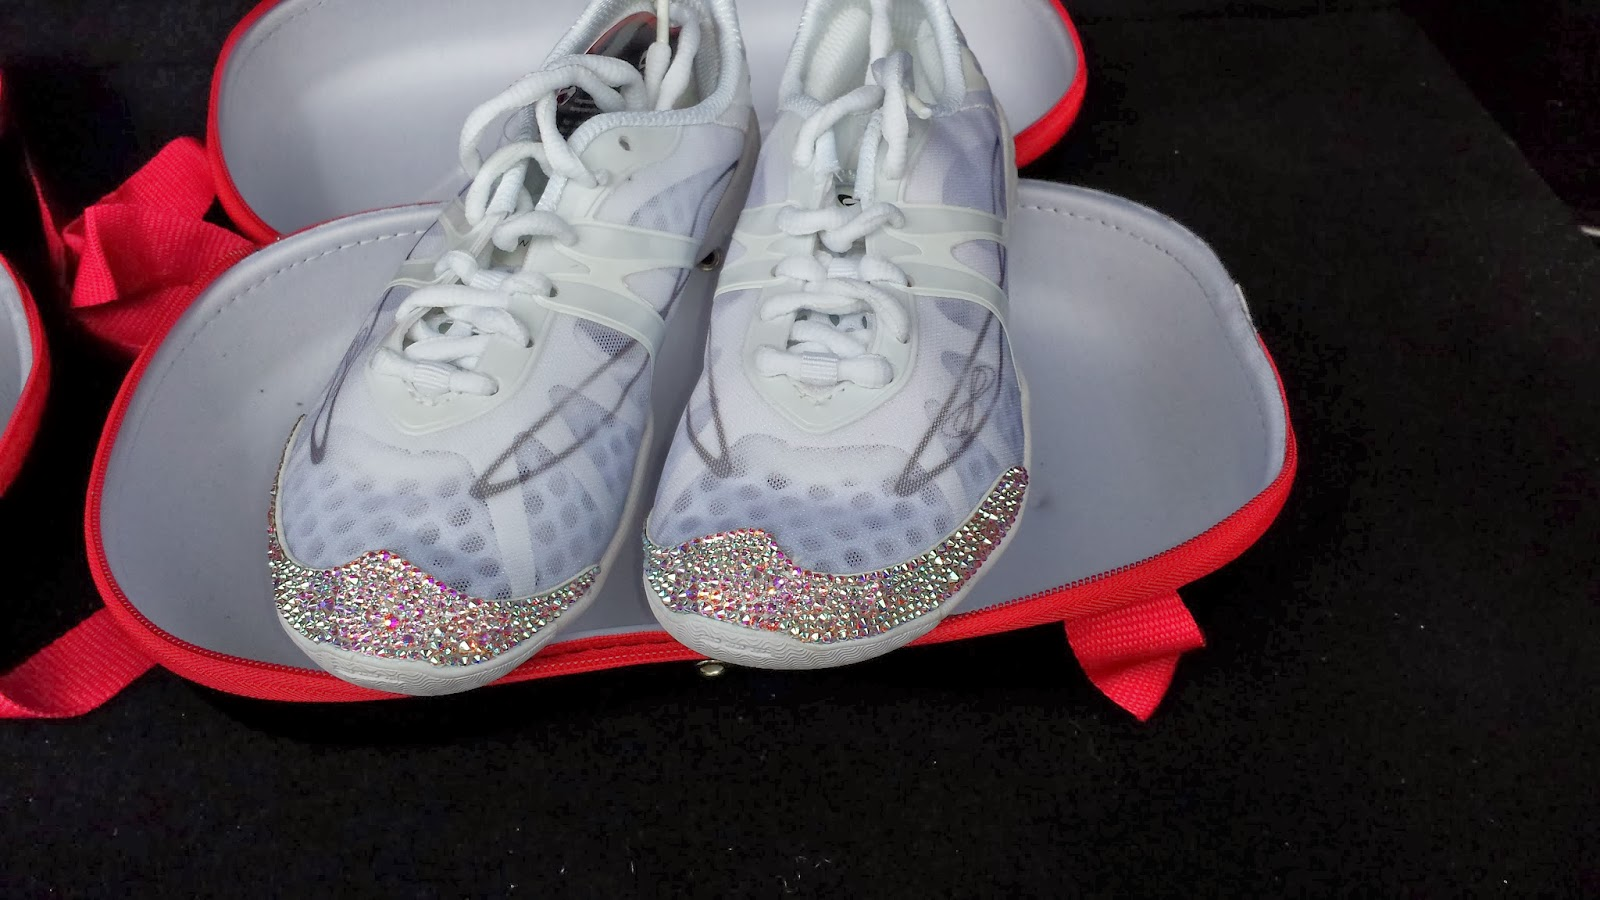 fa3c2856e1b Southern Crystal  Cheerleading Shoes in Crystal AB